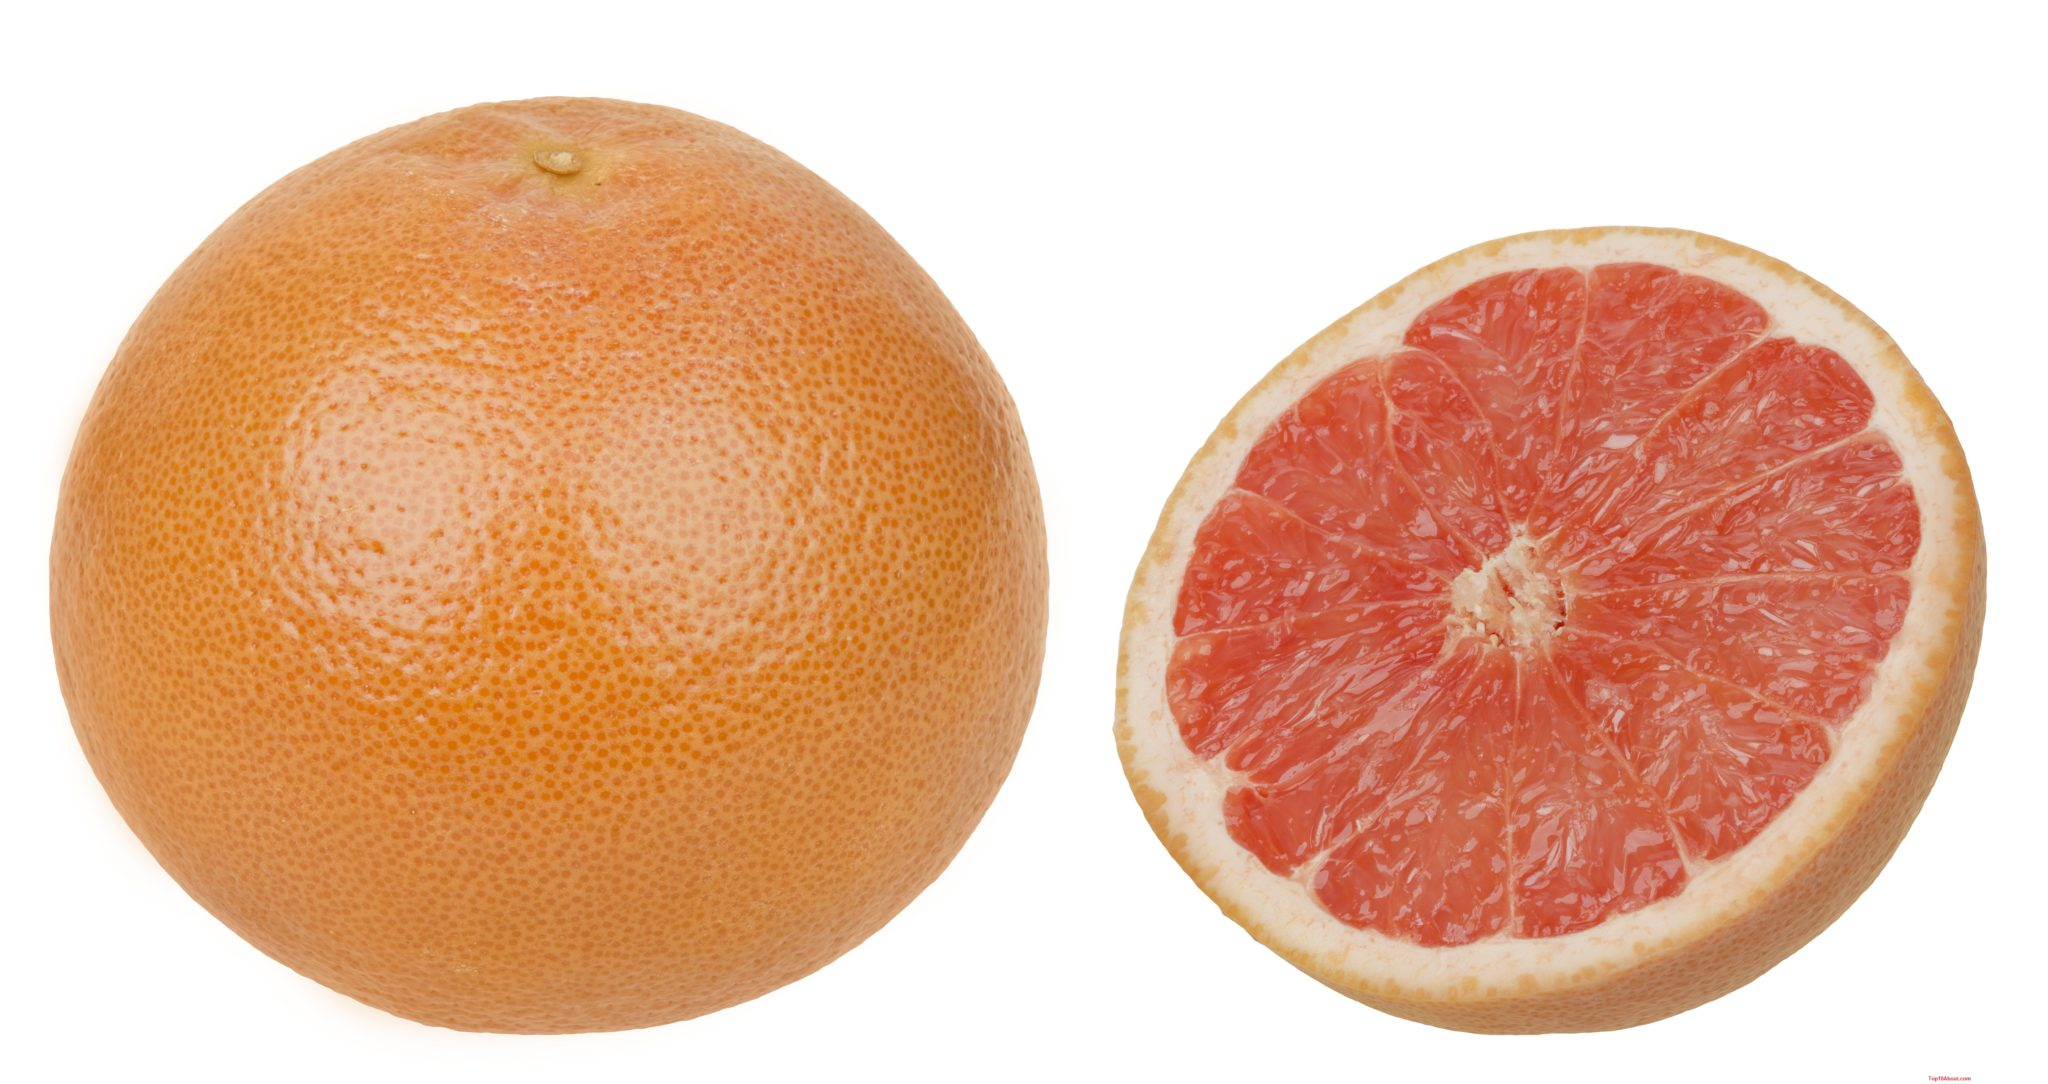 Grapefruit and diabetes-friendly diet: 10 superfoods that regulate blood sugar